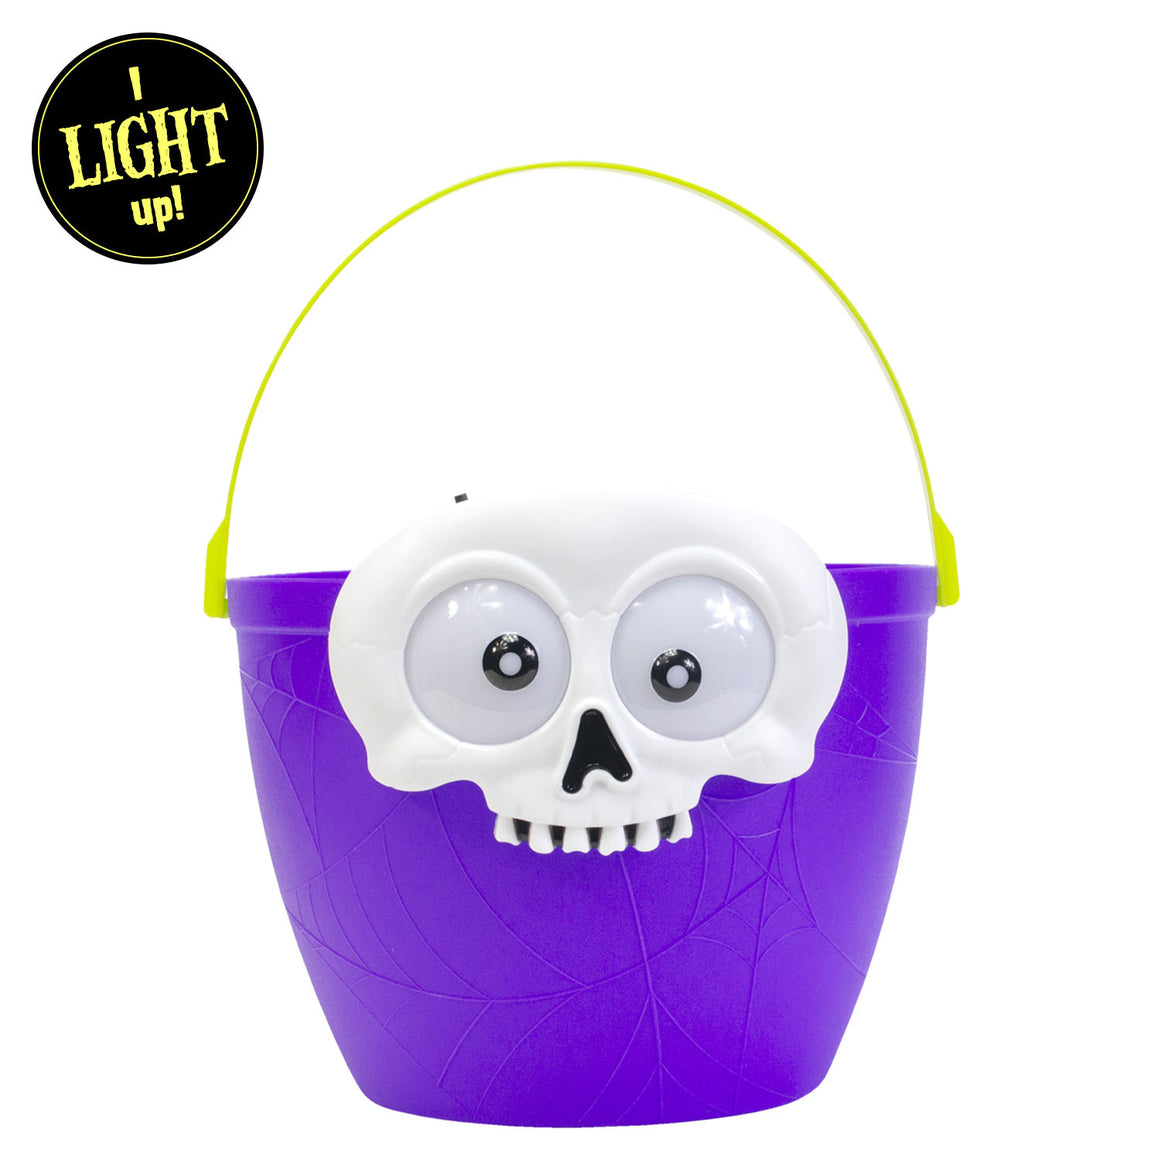 Orange Light Up Halloween Skull Candy Bucket at Cool Gear Halloween